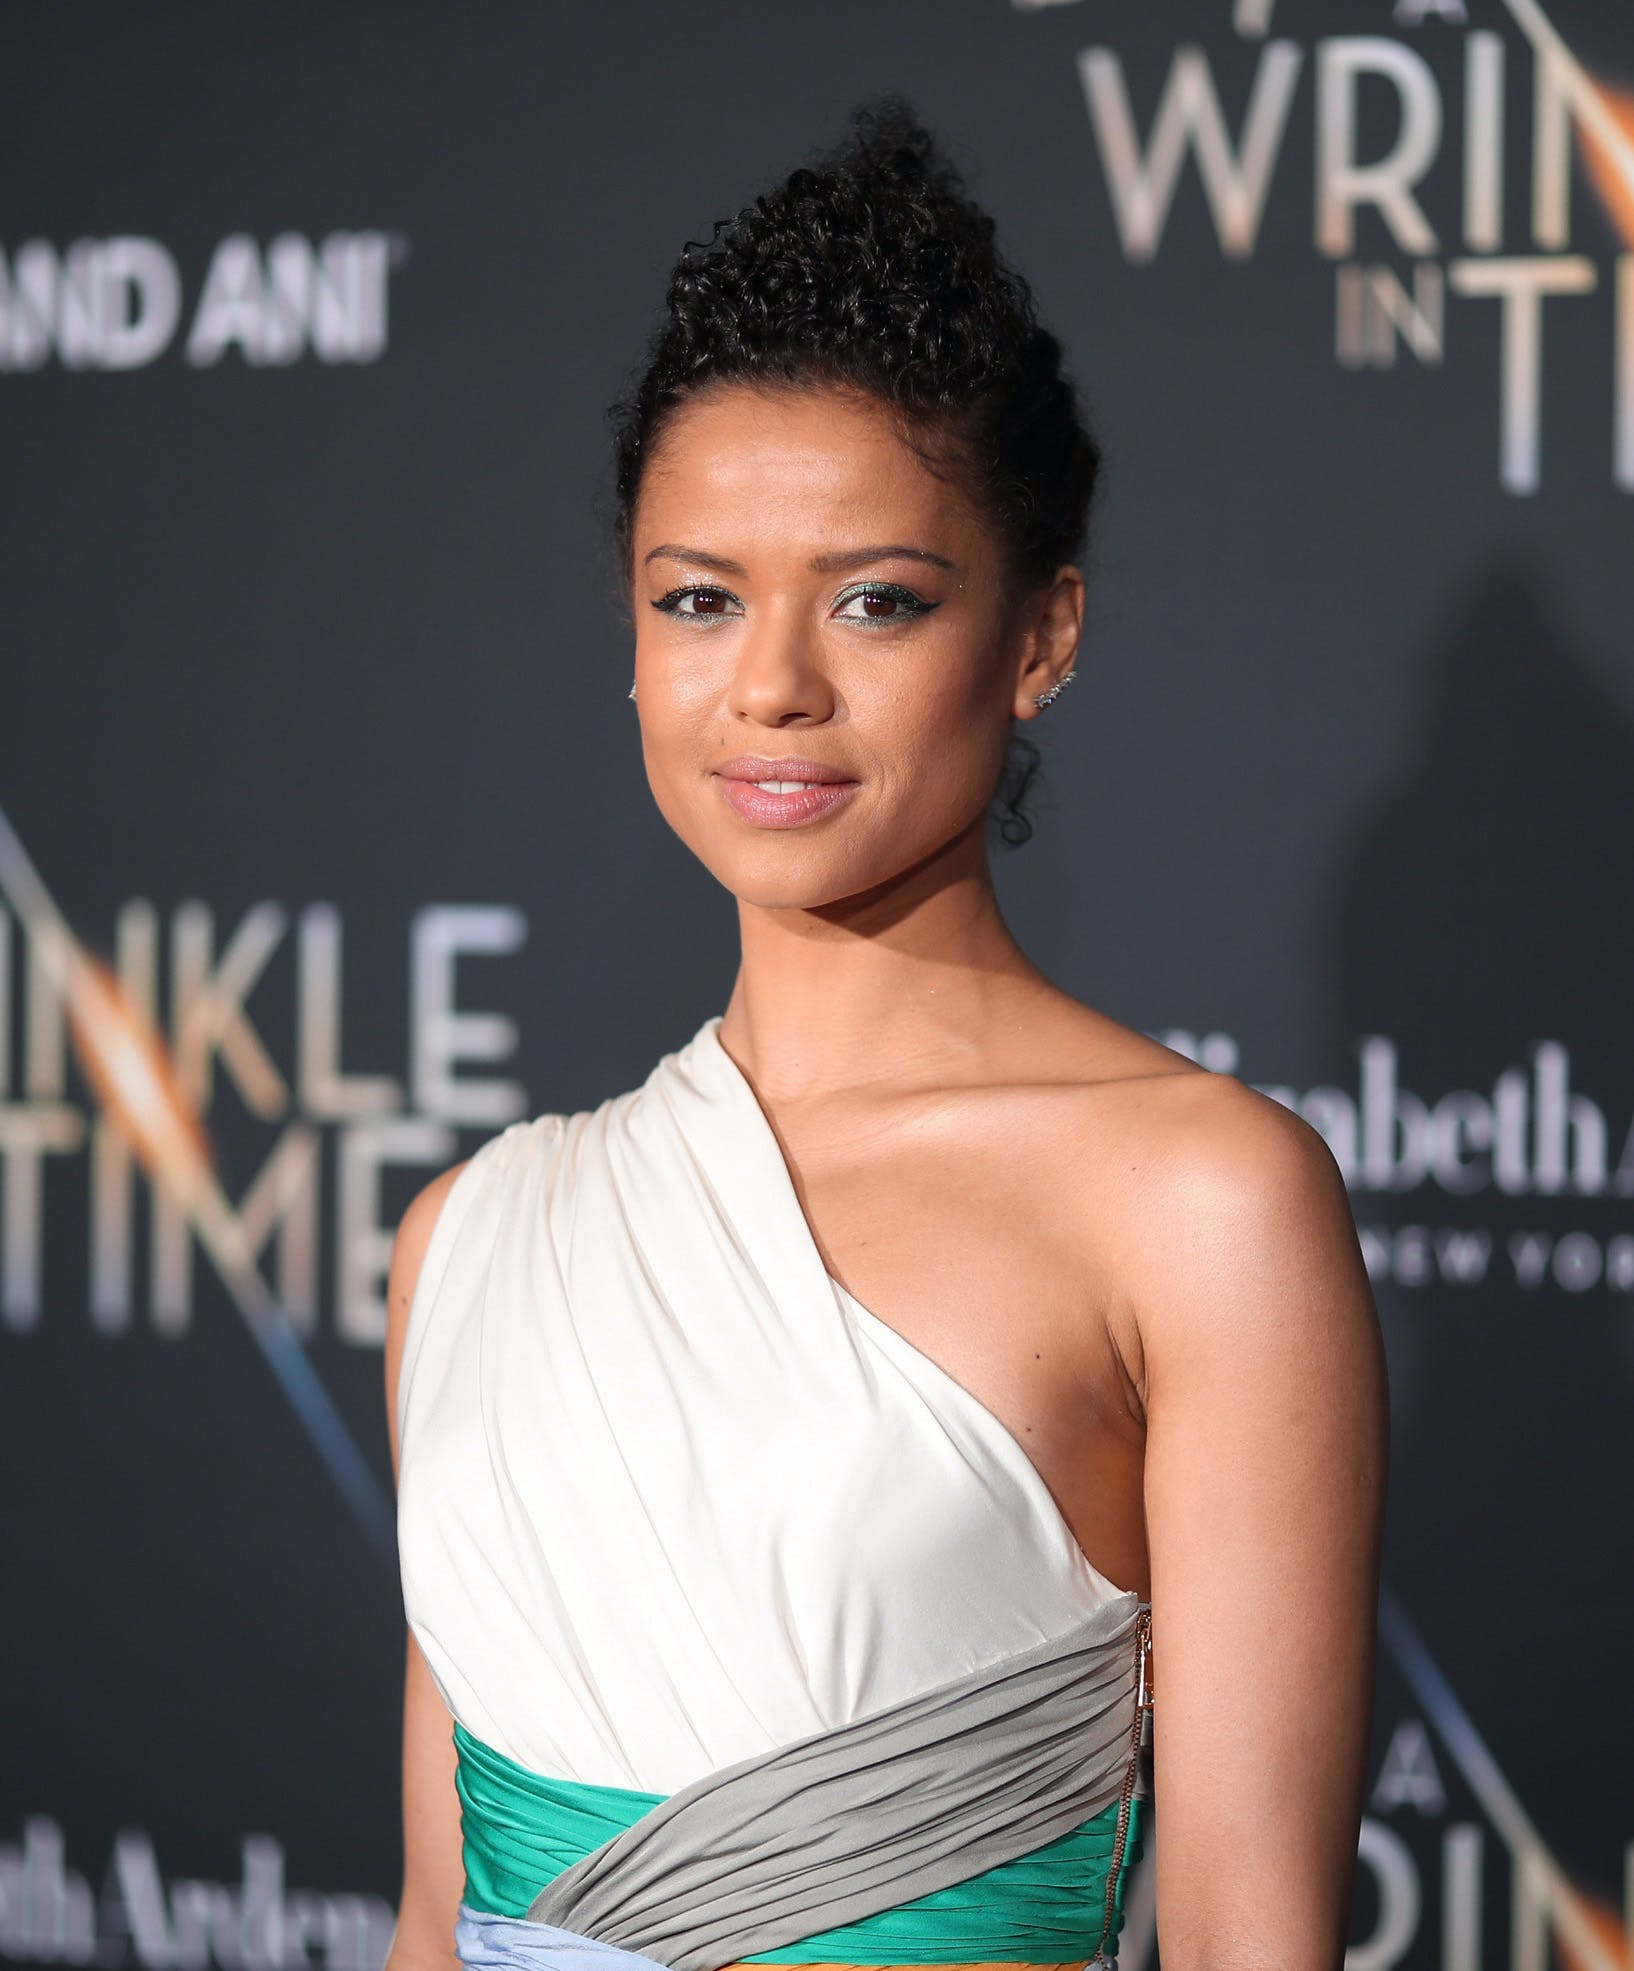 Gugu Mbatha Raw at the premier of A Wrinkle In Time